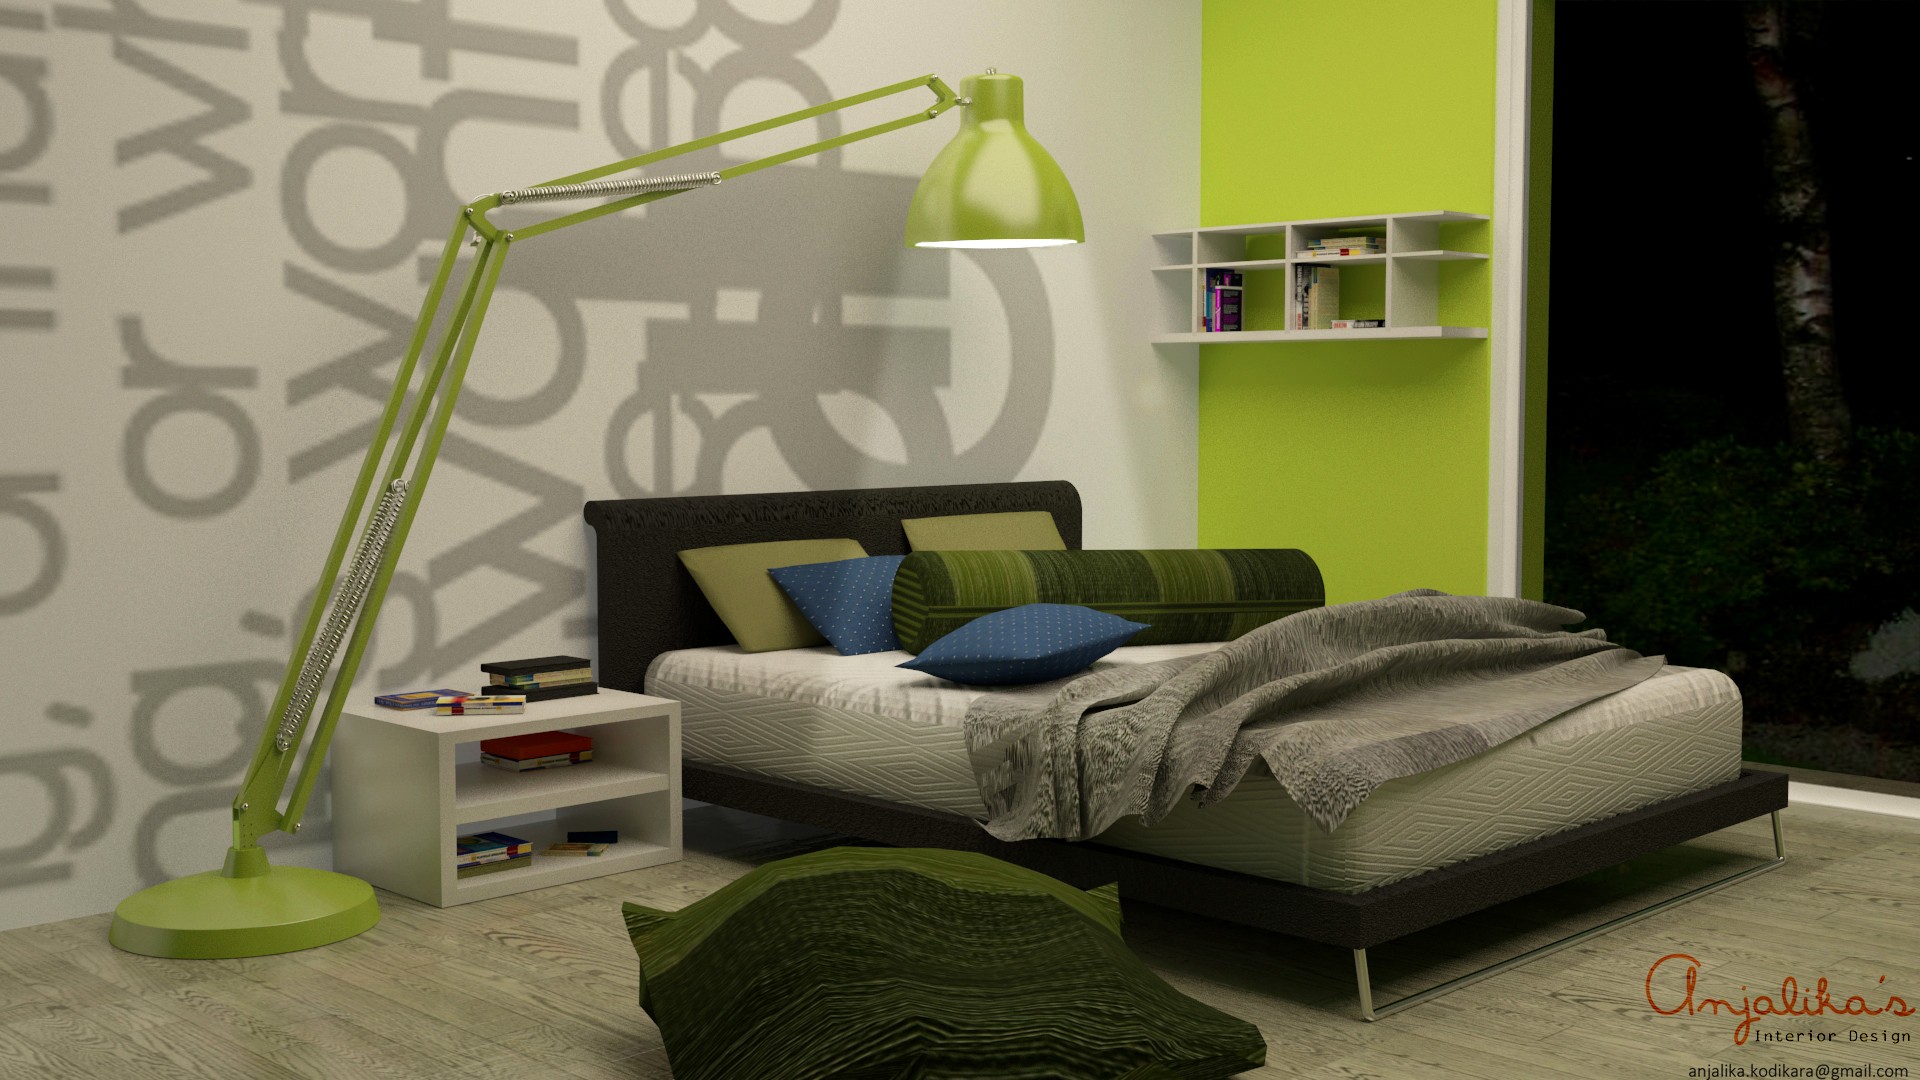 make 3D models of interiors and make architectural renders